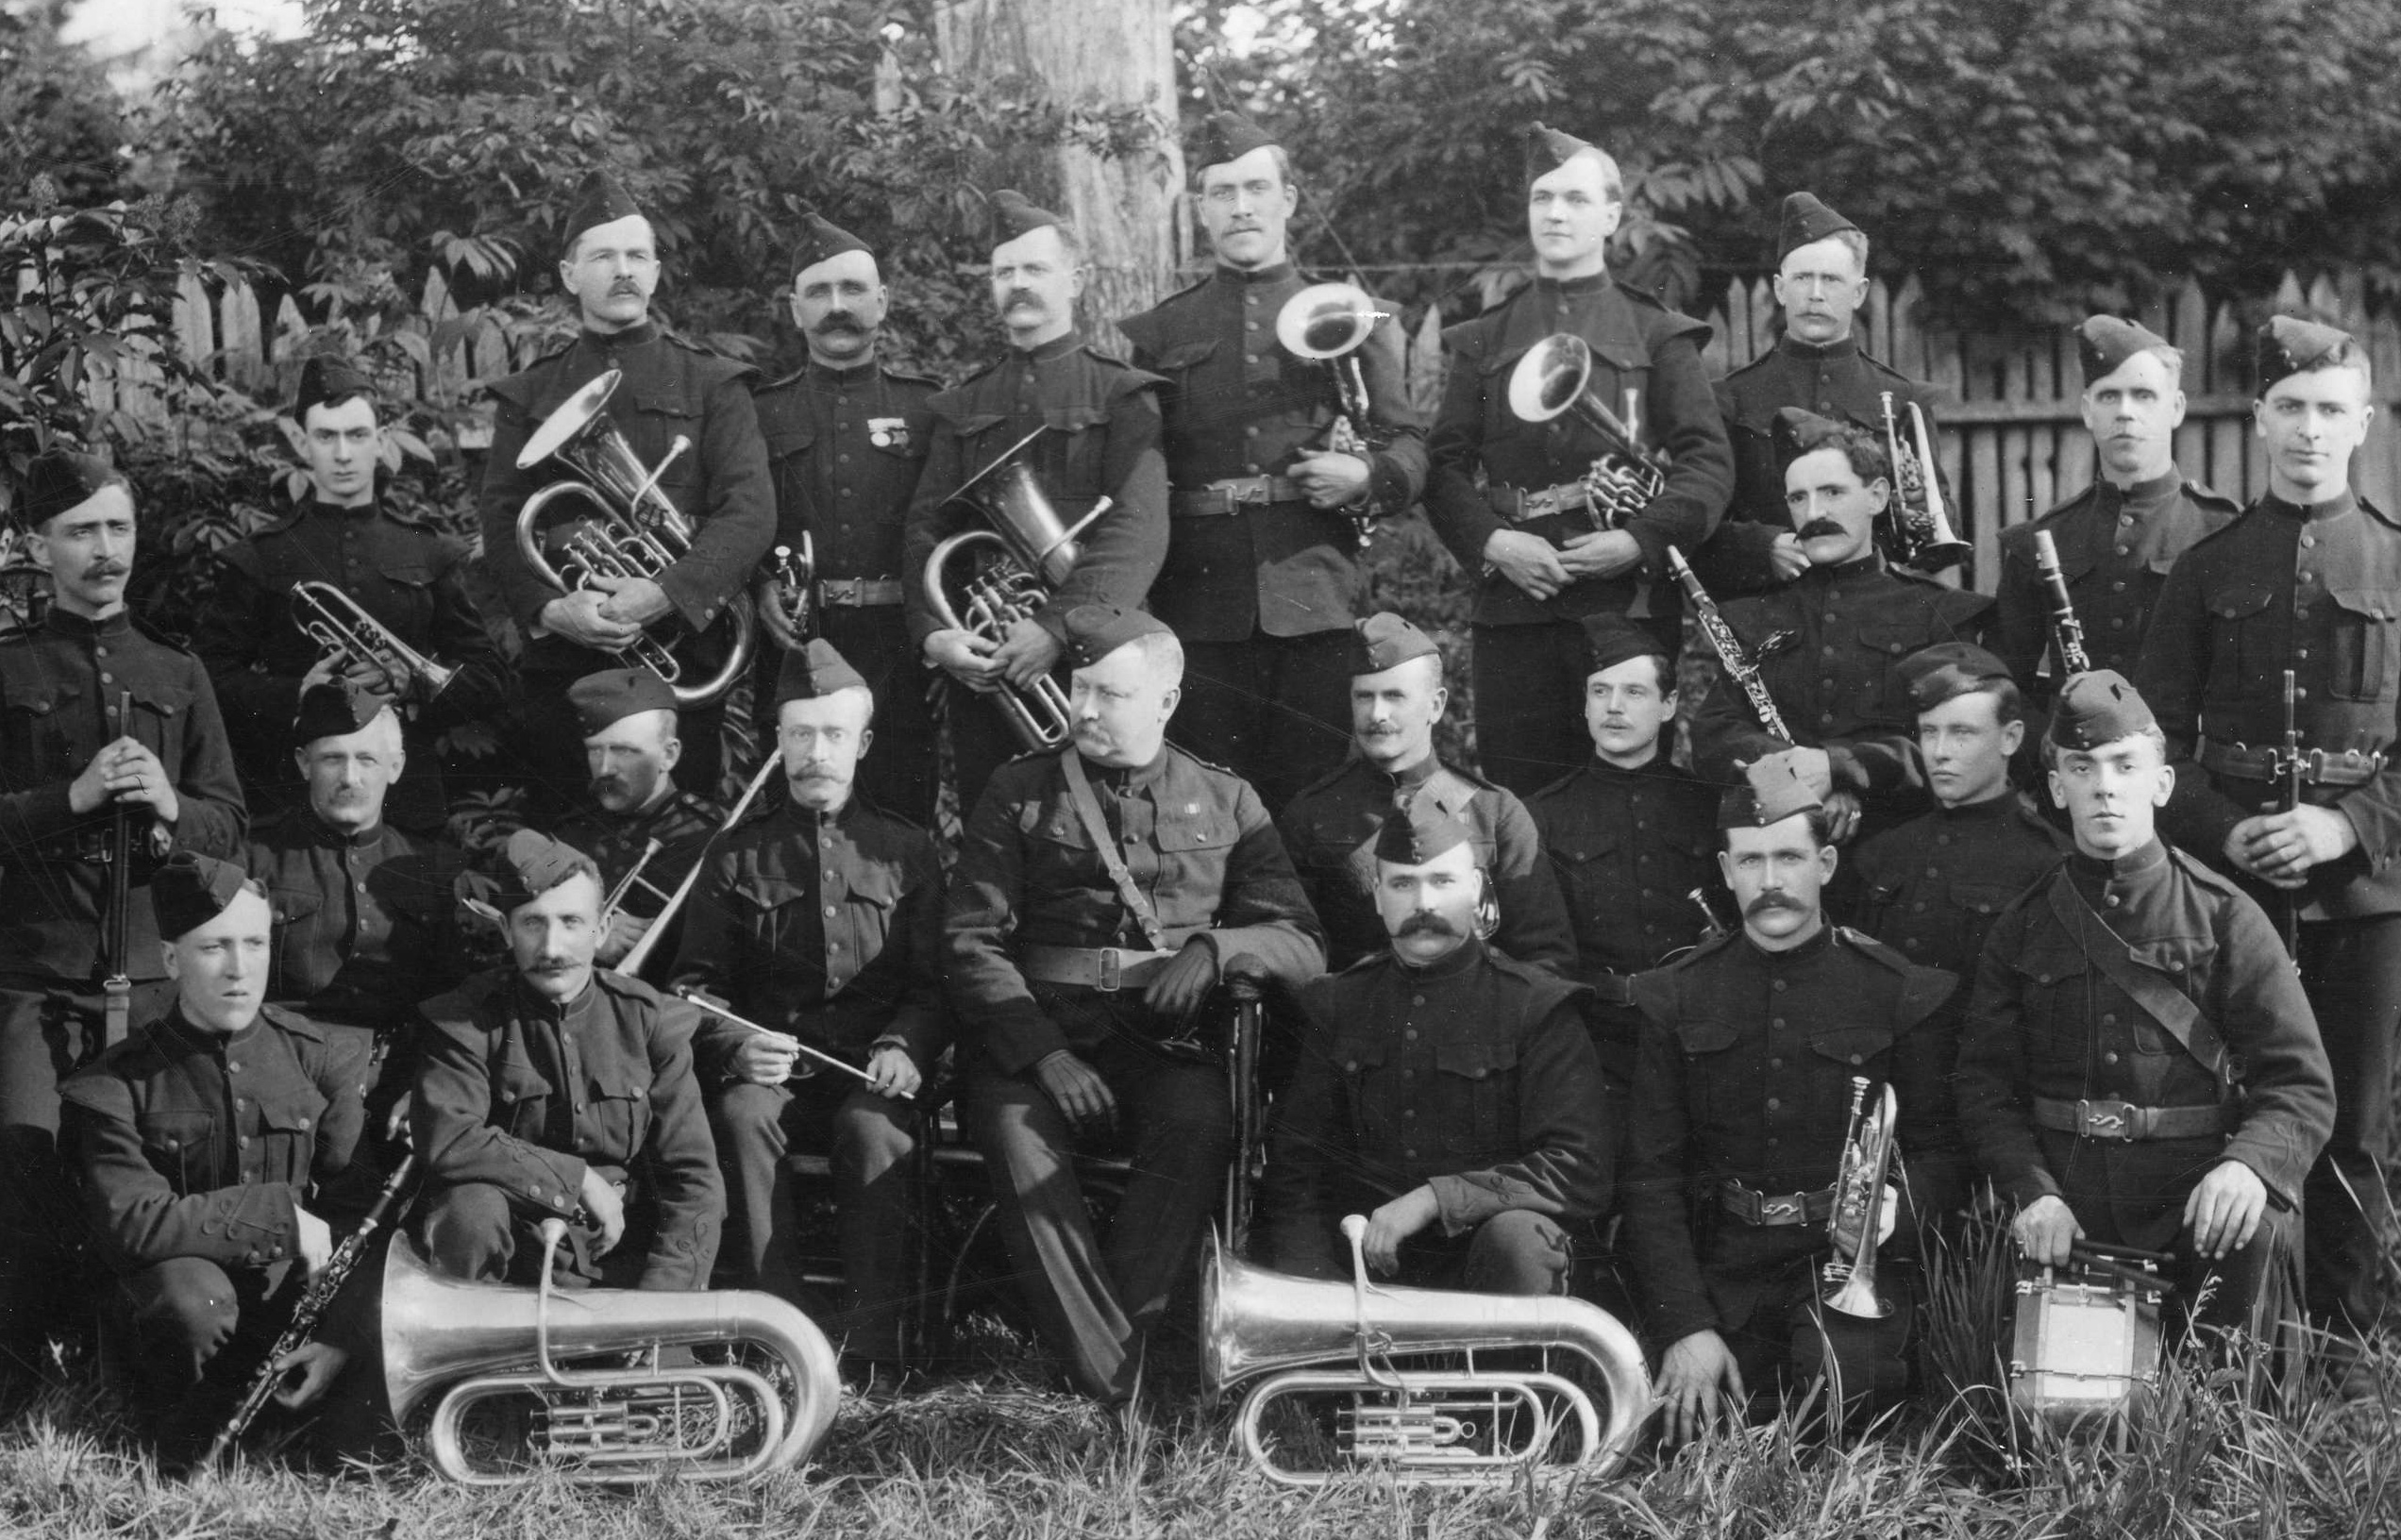 vancouver-sixth-regiment-band-1901-including-Edward